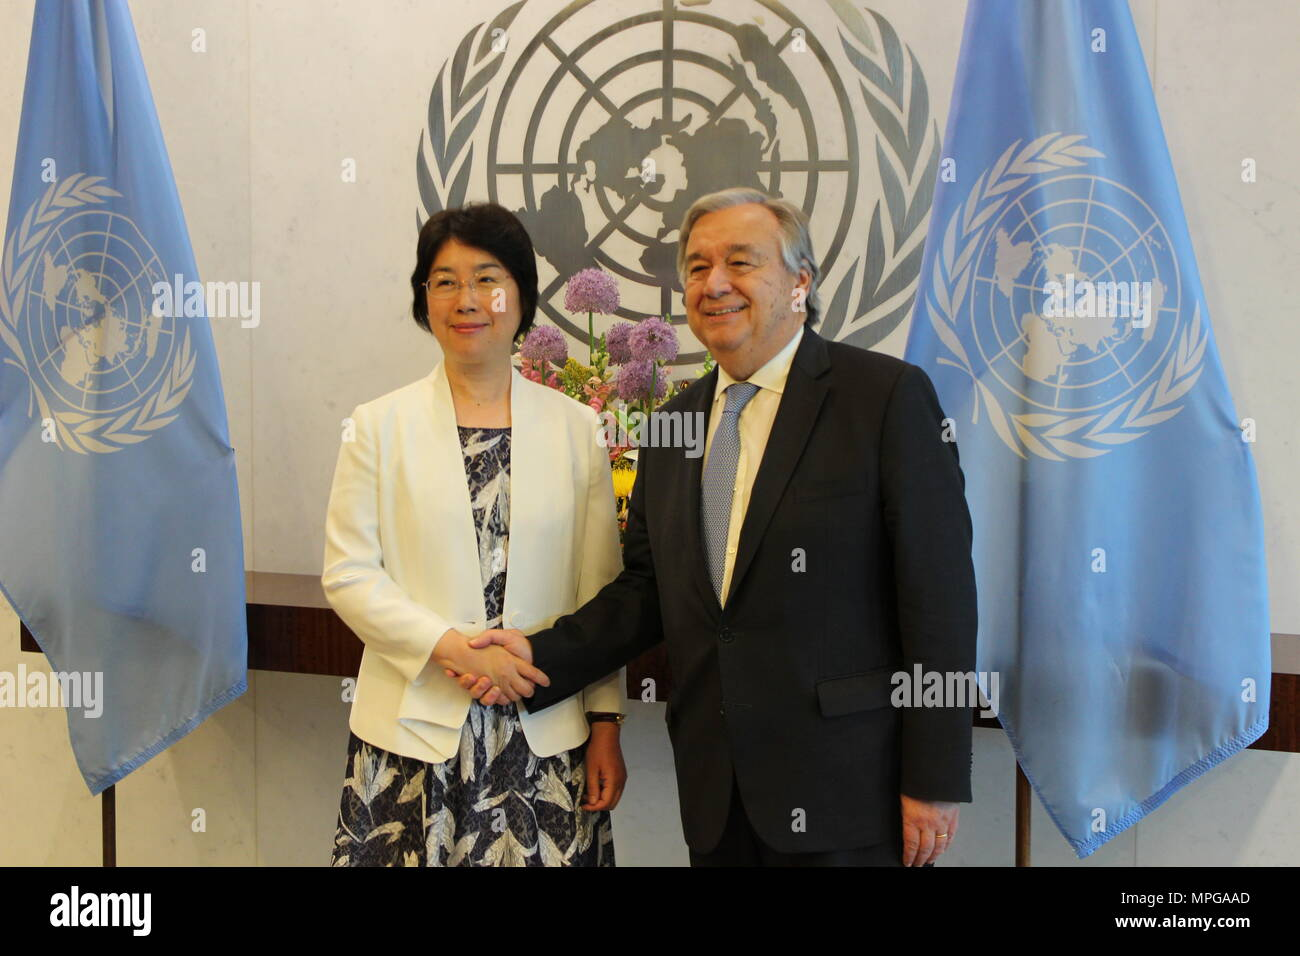 UN, New York, USA. 23rd May, 2018. UN Sec-Gen Antonio Guterres met Zou Jiayi, China's Commissioner of the National Supervisory Commission. Photo: Matthew Russell Lee / Inner City Press Credit: Matthew Russell Lee/Alamy Live NewsStock Photo